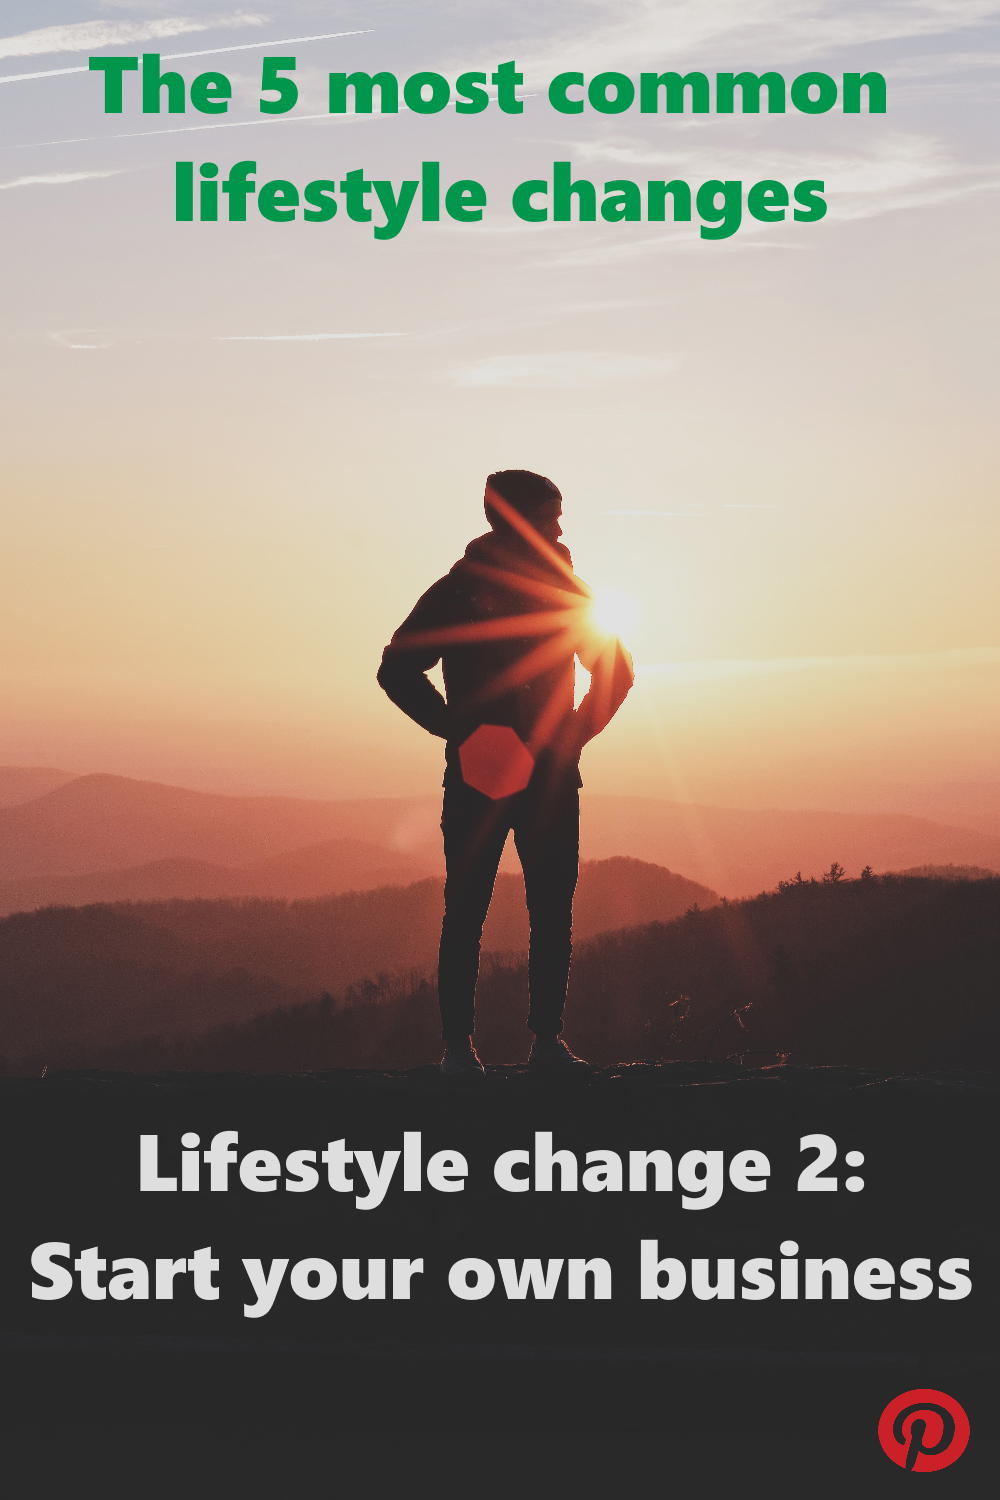 The 5 most common Lifestyle Changes - Start your own business